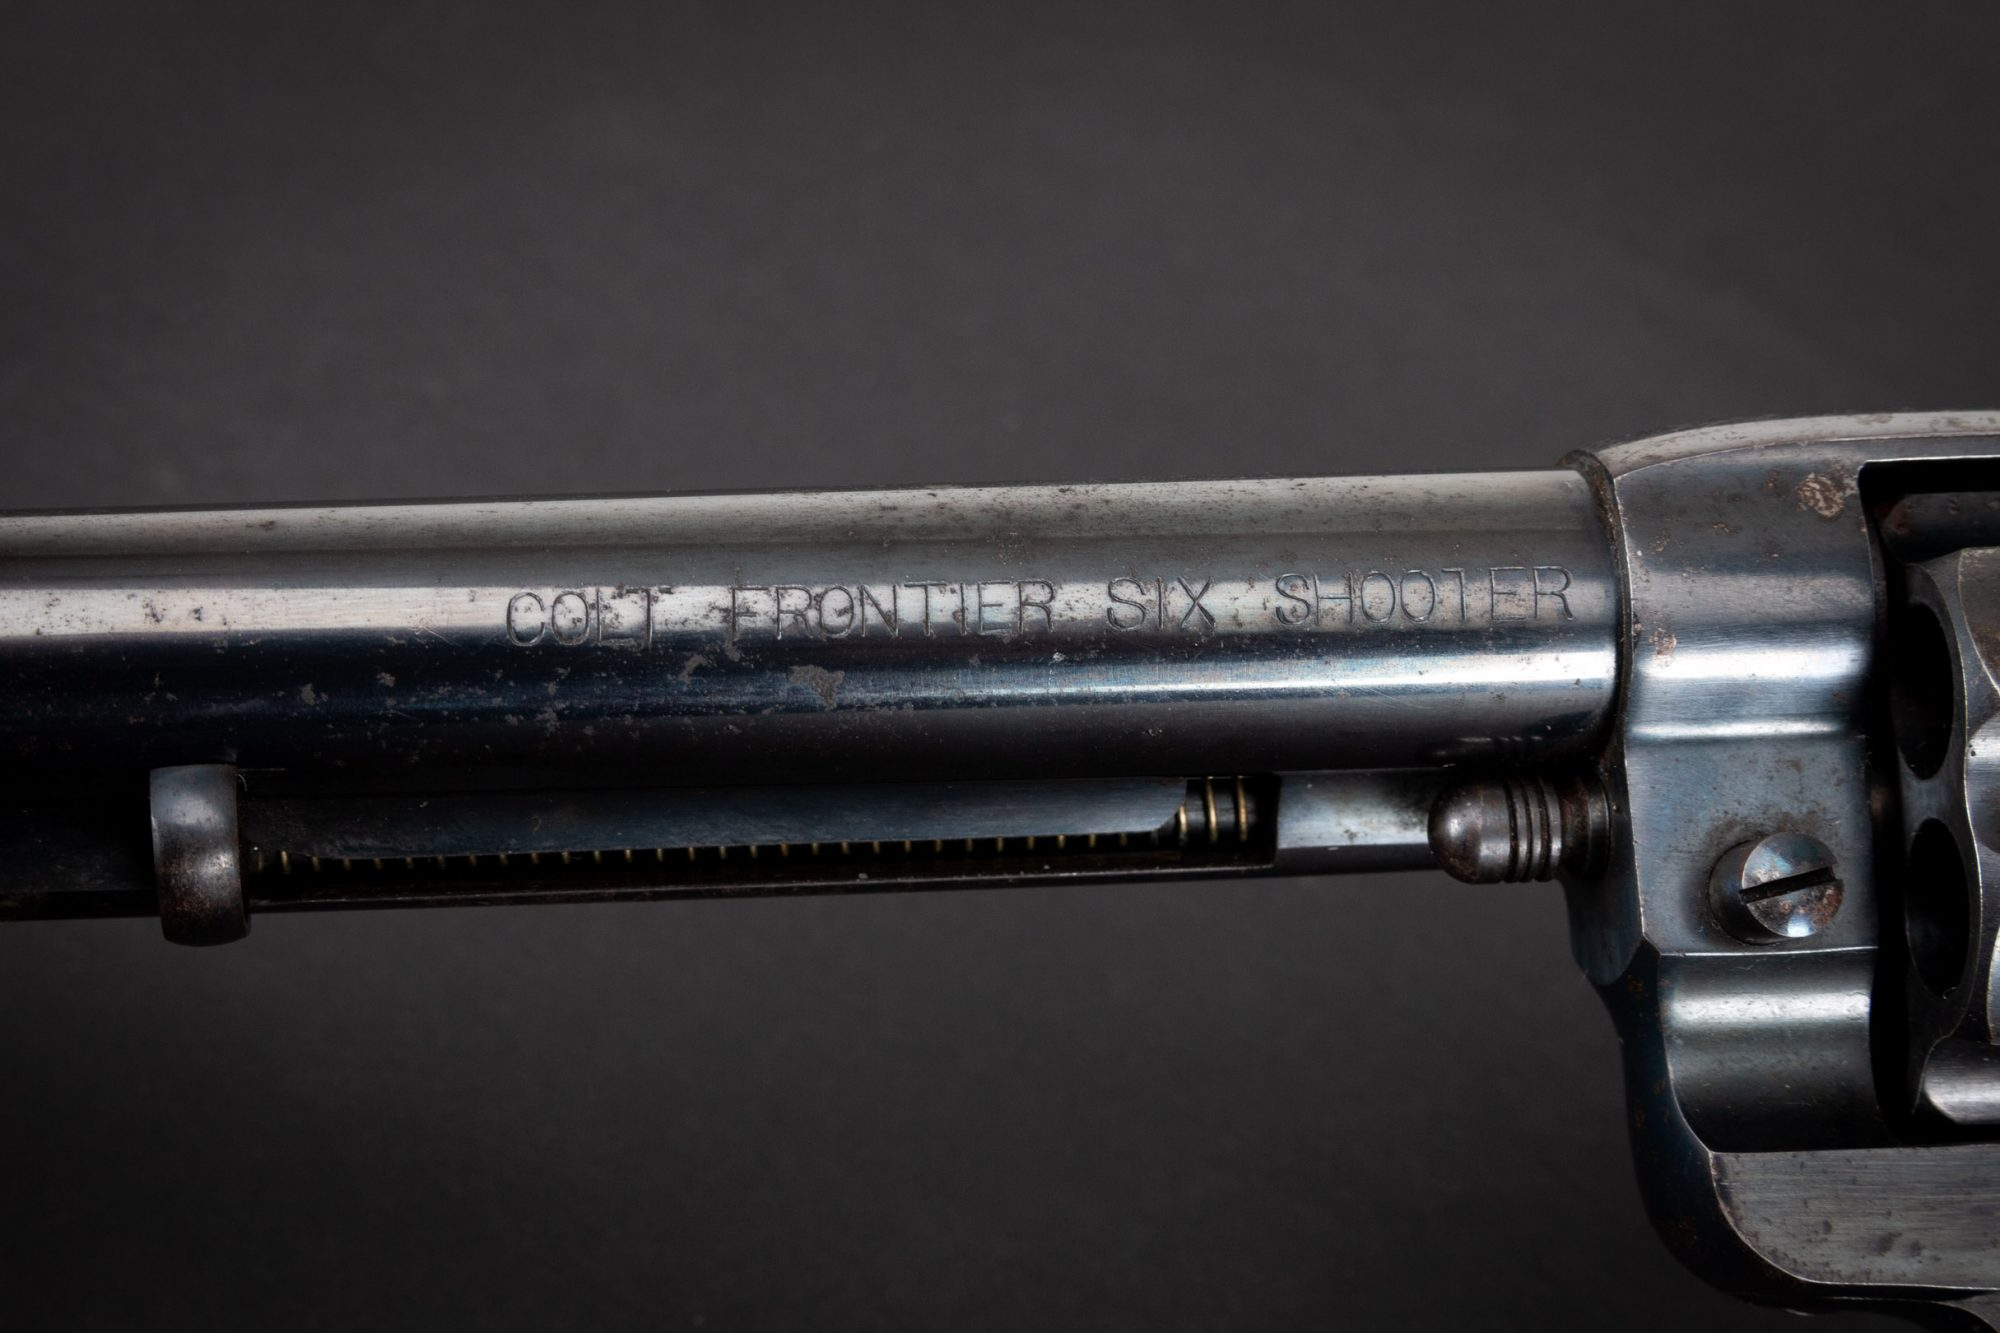 Photo of a pre-owned Colt 1878 Frontier Six Shooter, sold as-is by Turnbull Restoration